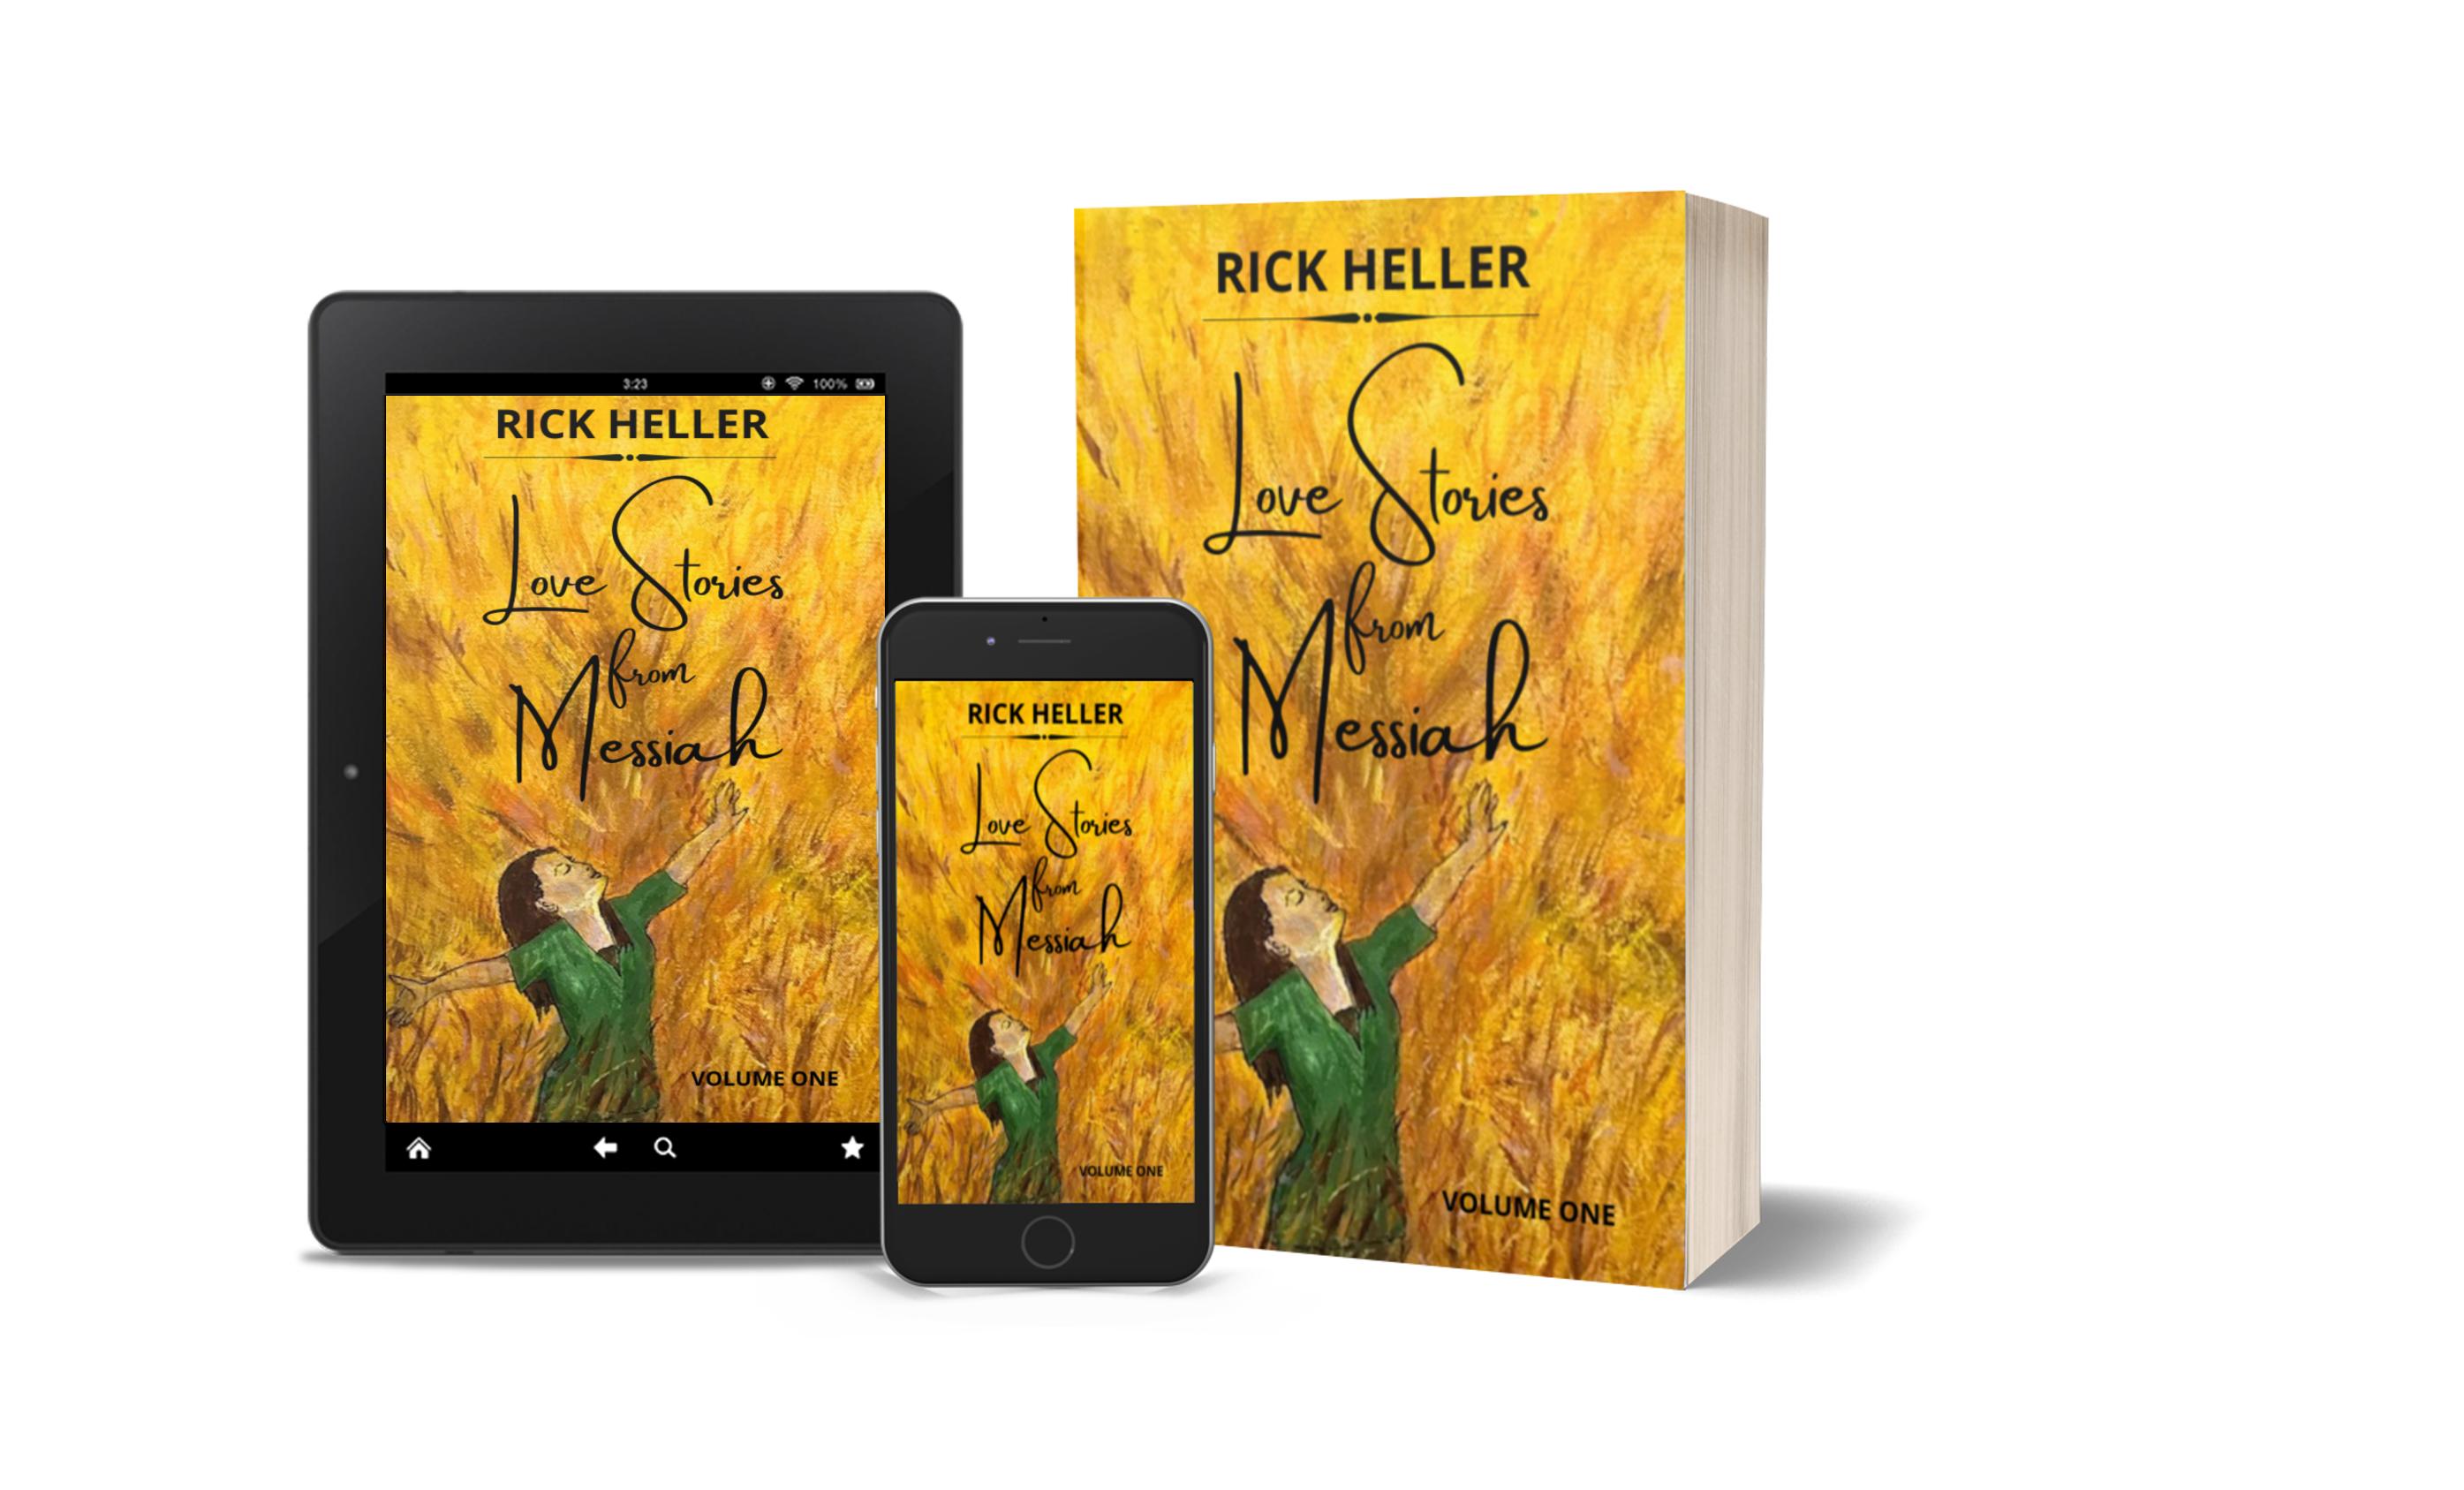 Love Stories from Messiah by Rick Heller